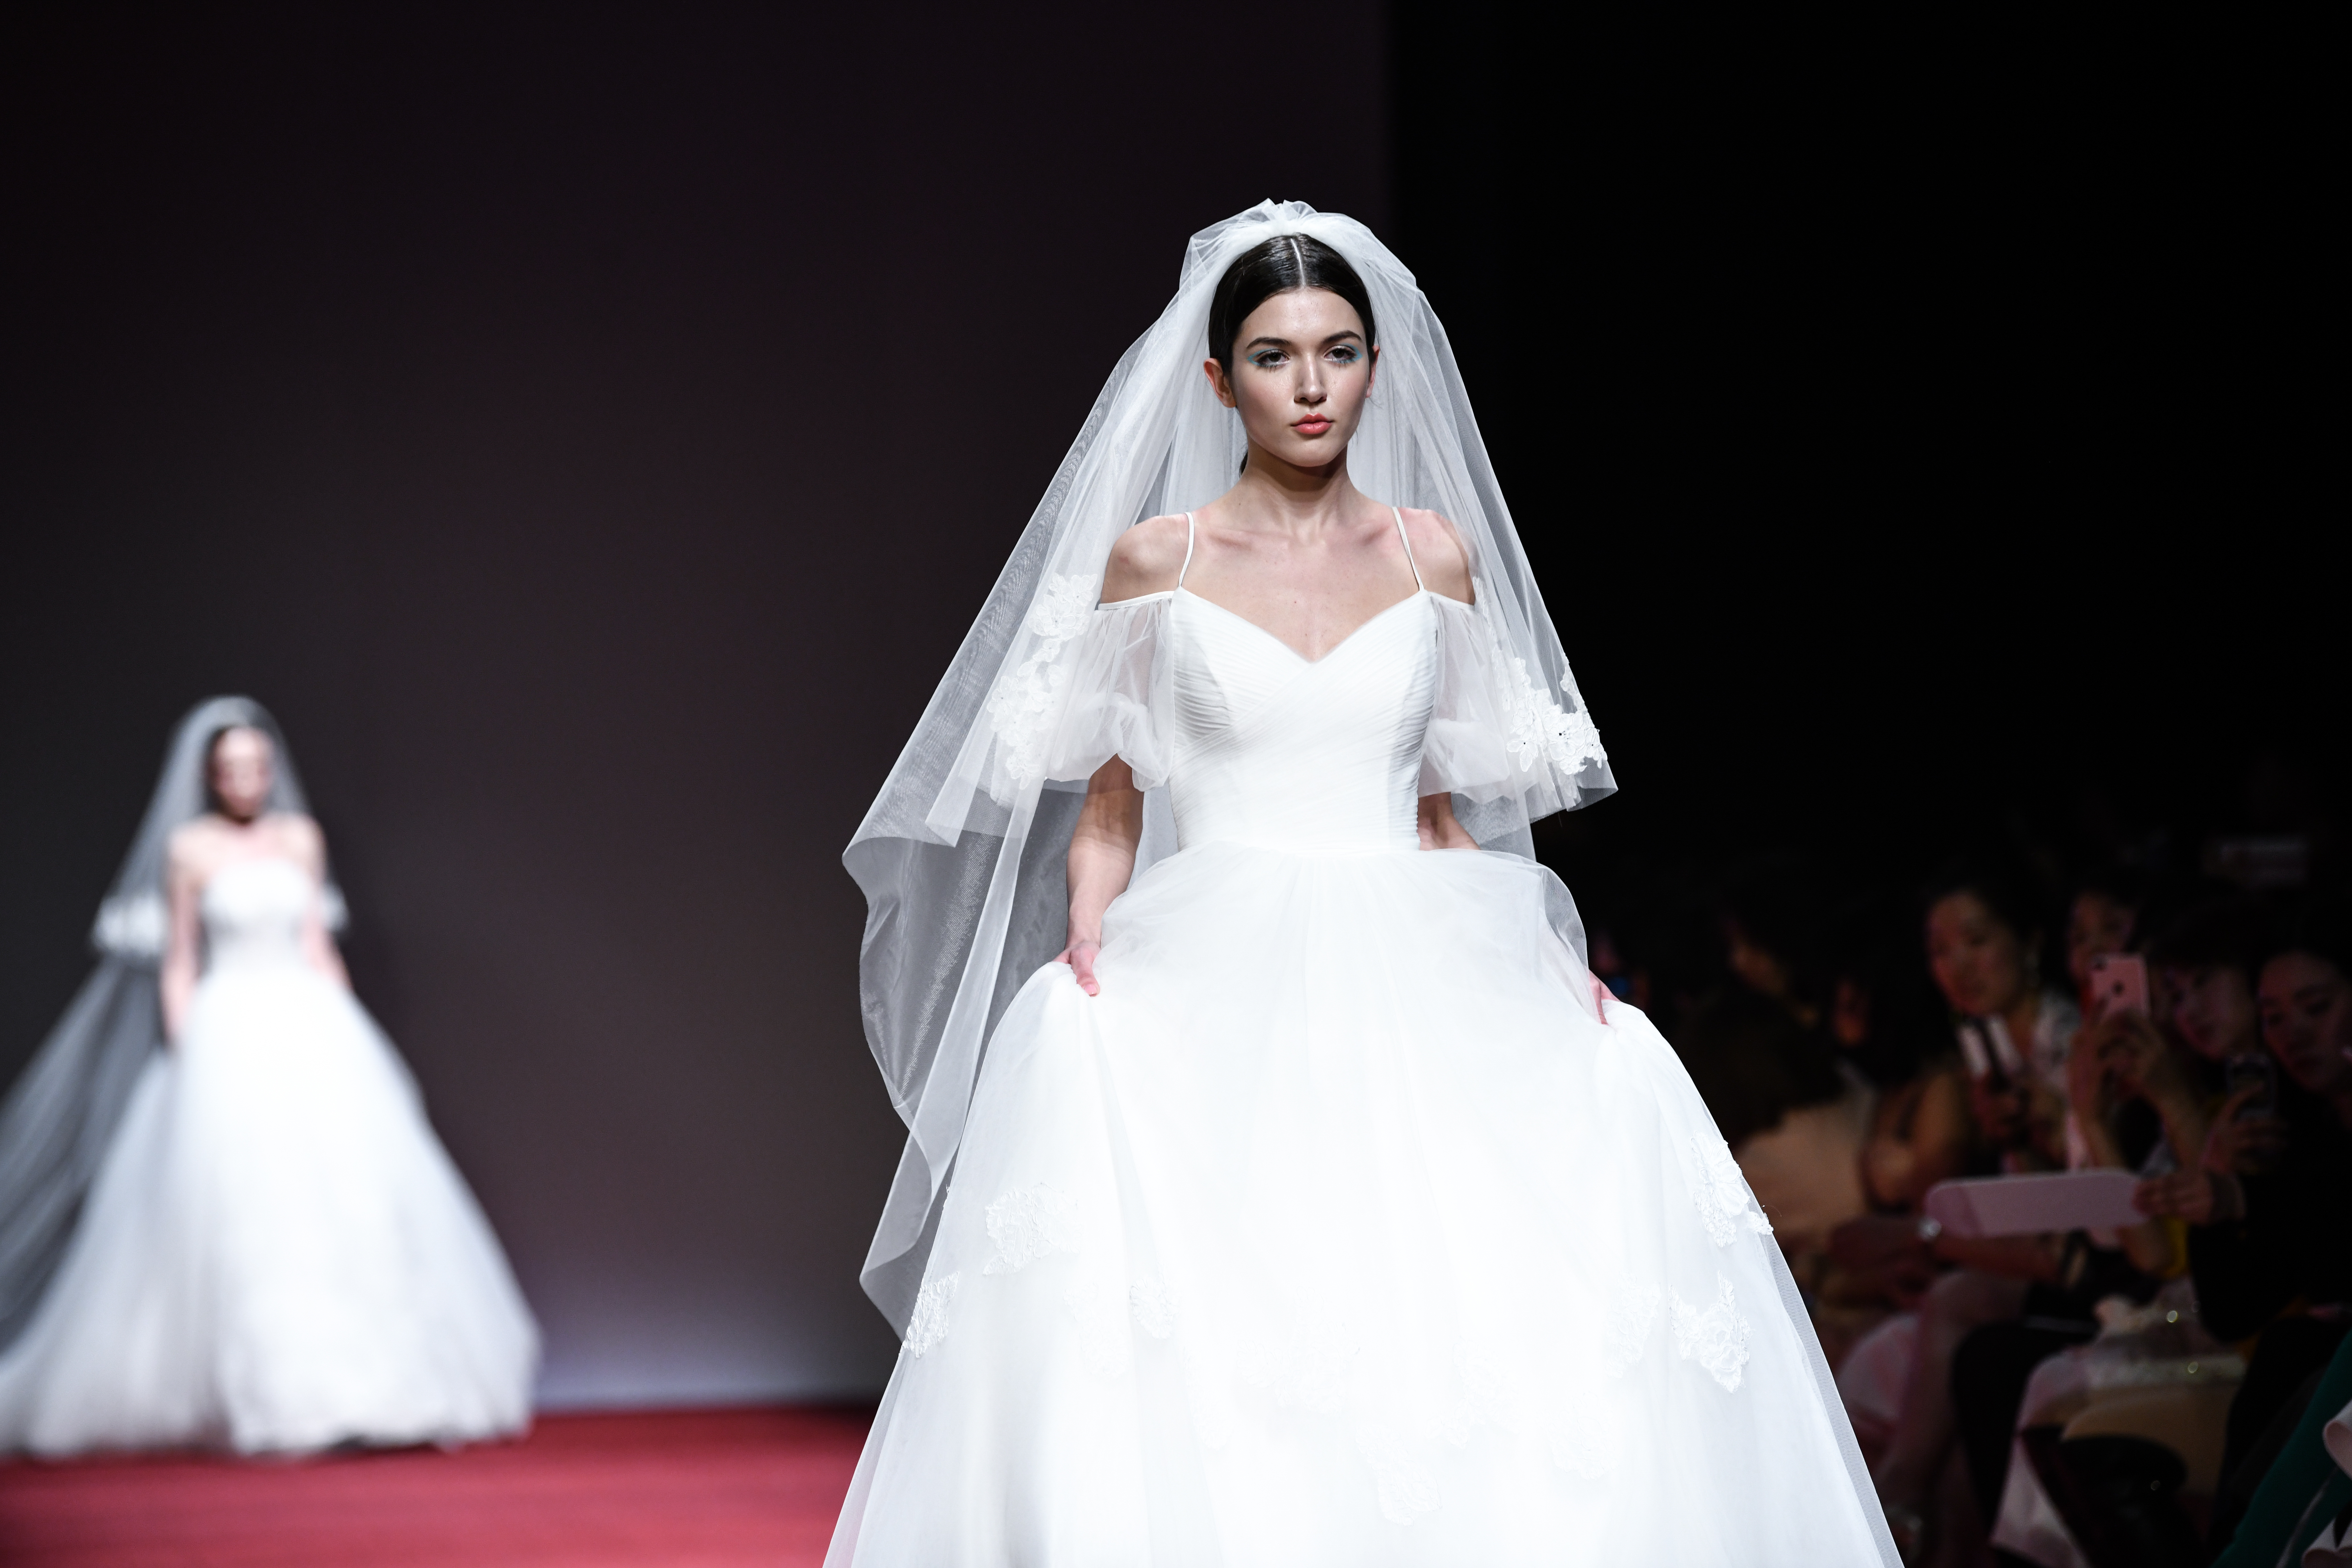 Models showcases veil designs in China